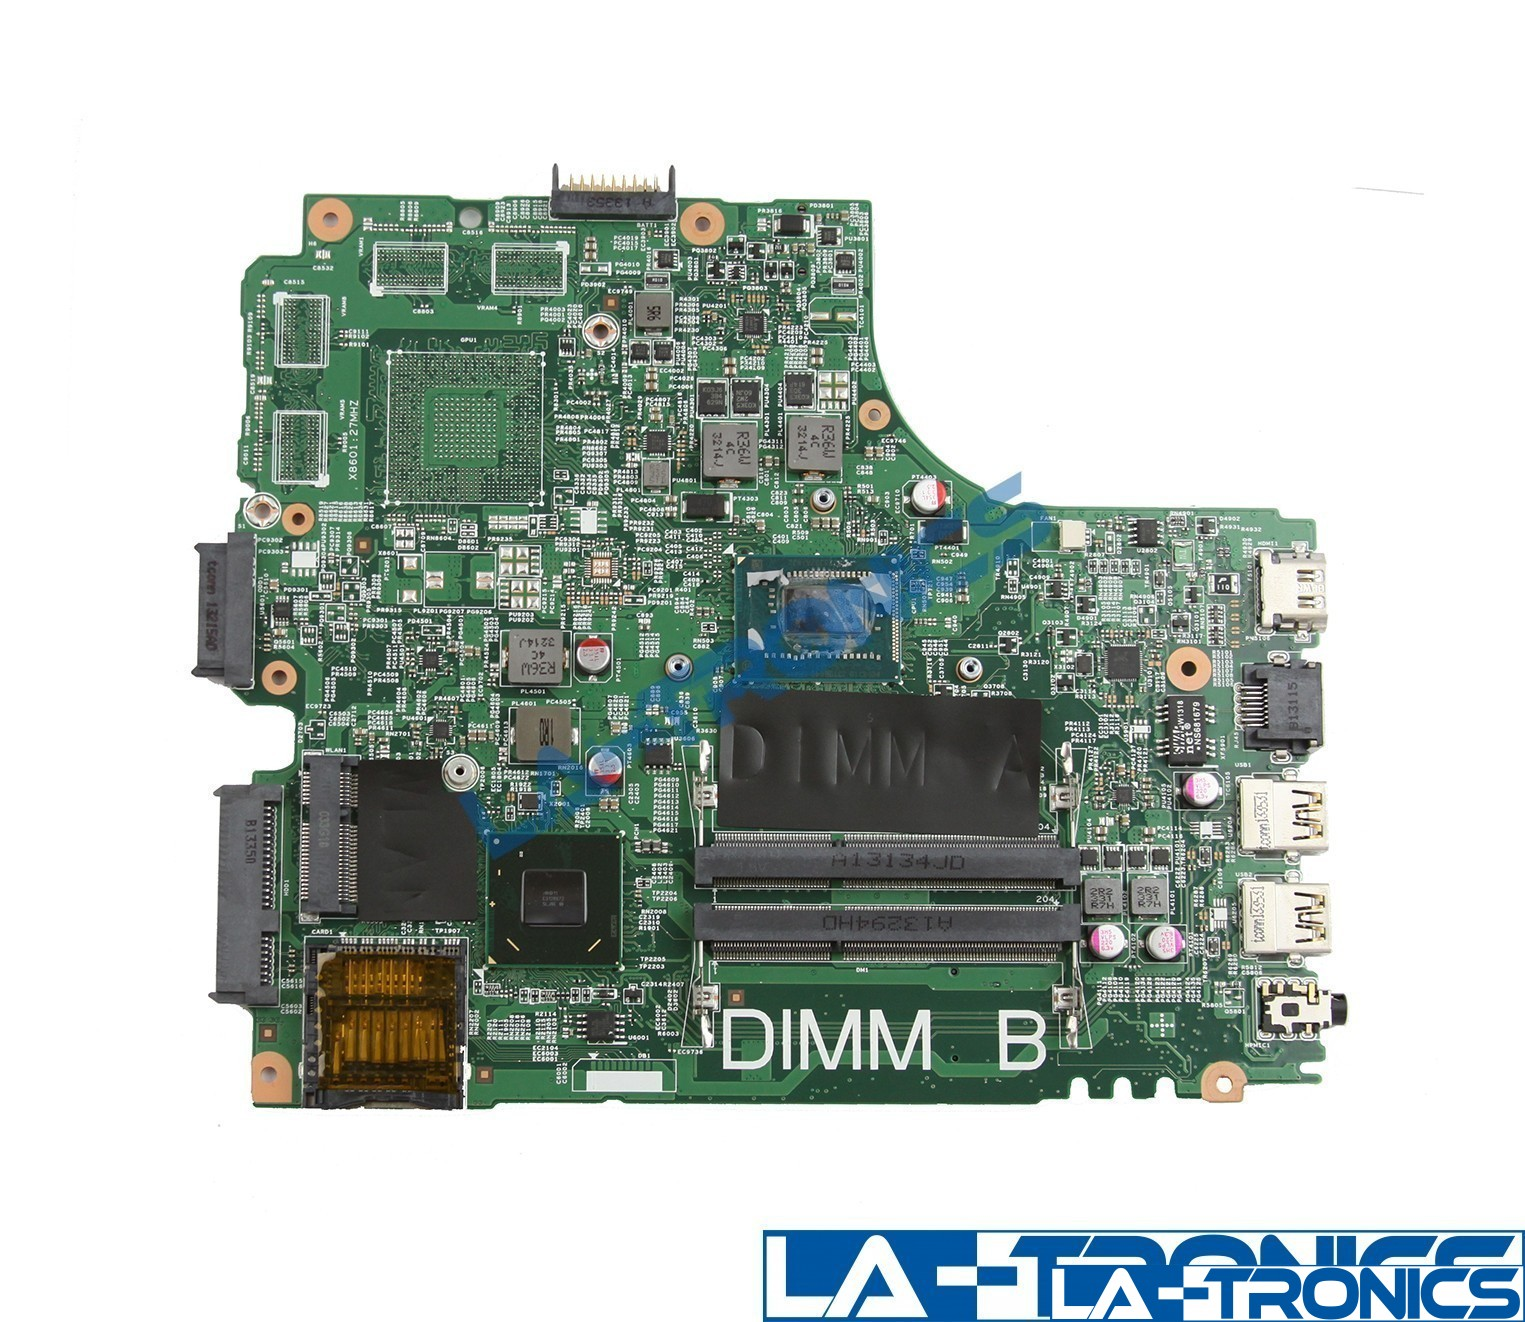 Dell Inspiron 14R 5421 14 3421 Motherboard System Board 1.90GHz Core i3 CPU